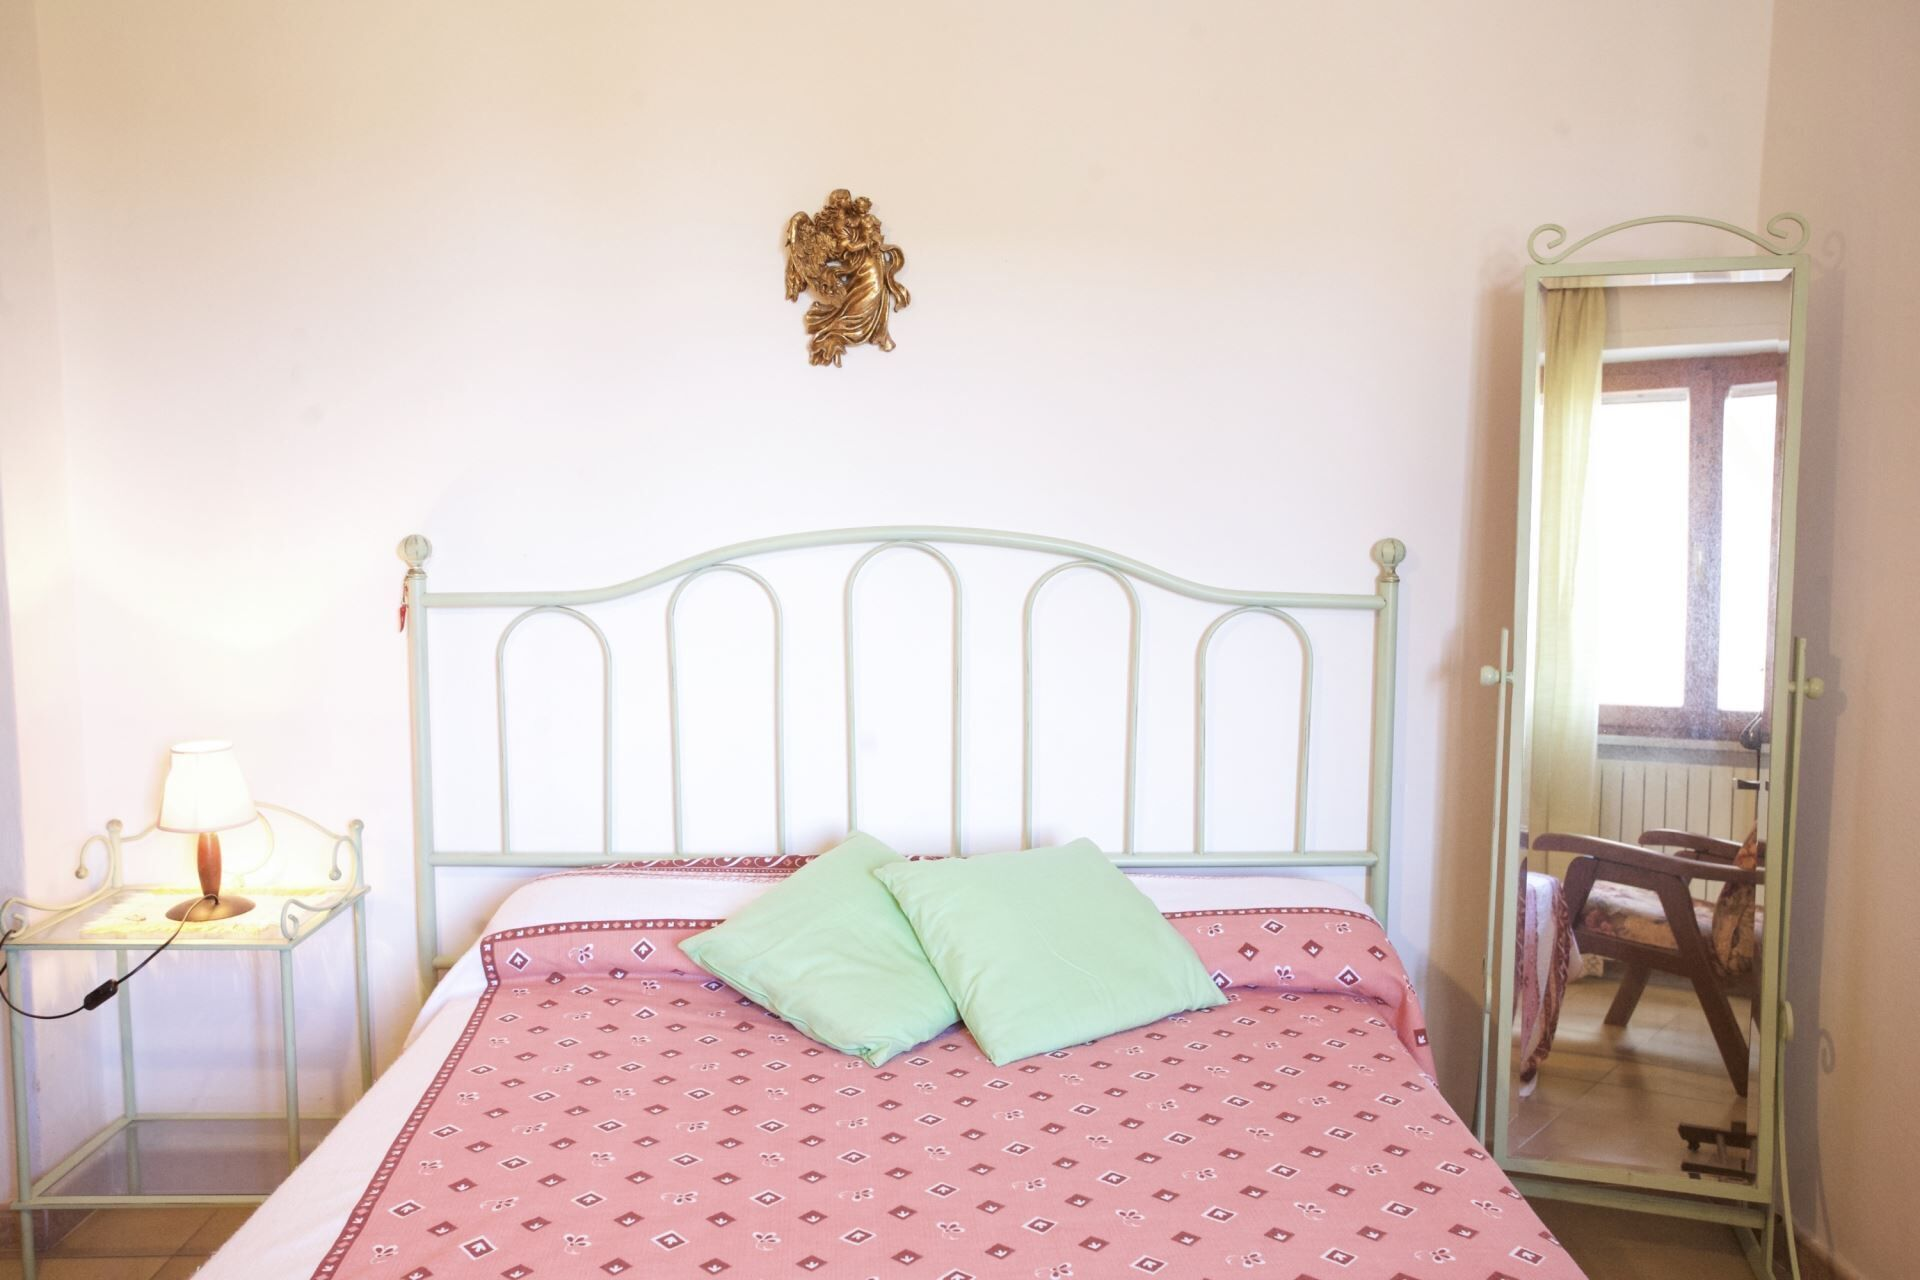 Villetta San Giovanni 4/6 Beds With Outdoor Area